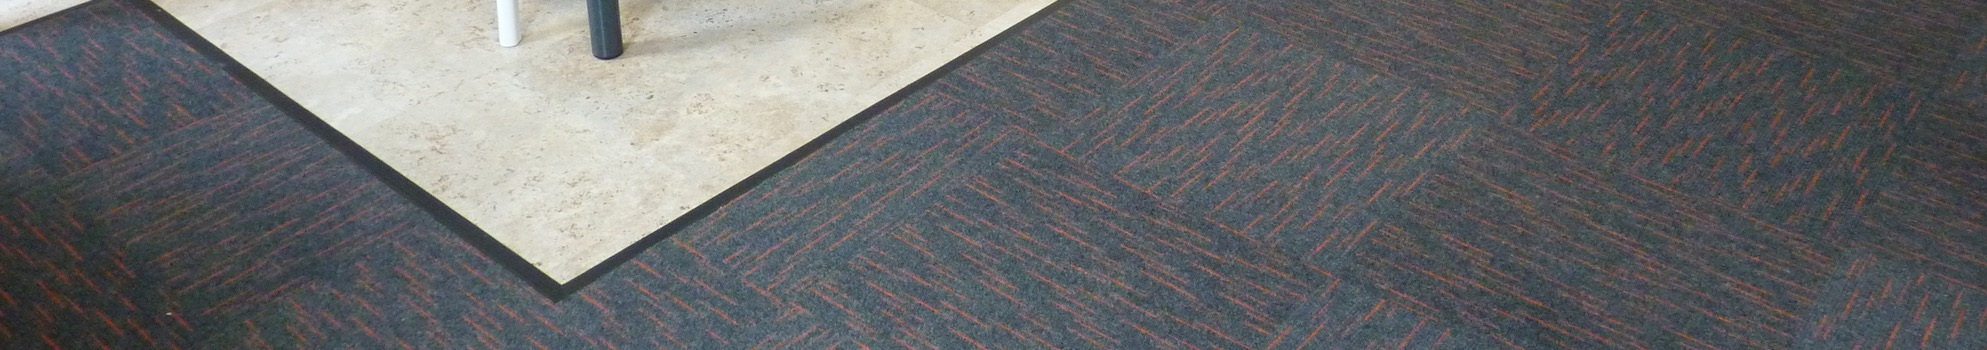 Heckmondwike FB | Student Accommodation Carpet | Featured Image